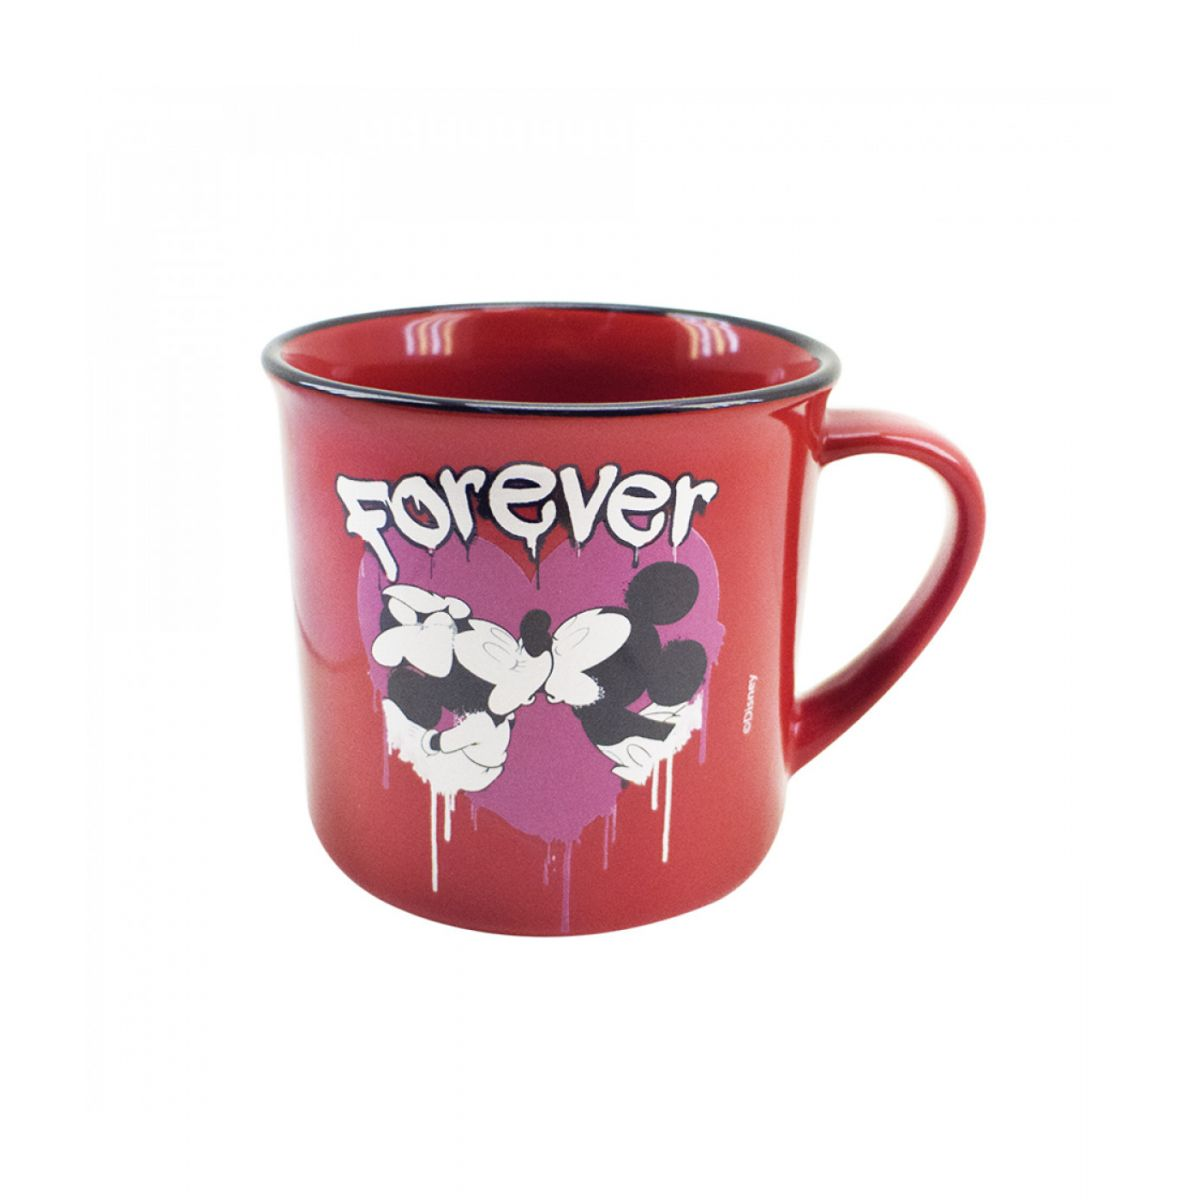 "CANECA DE PORCELANA VERMELHA MICKEY & MINNIE ""TRUE LOVE"" 280ML - DISNEY"